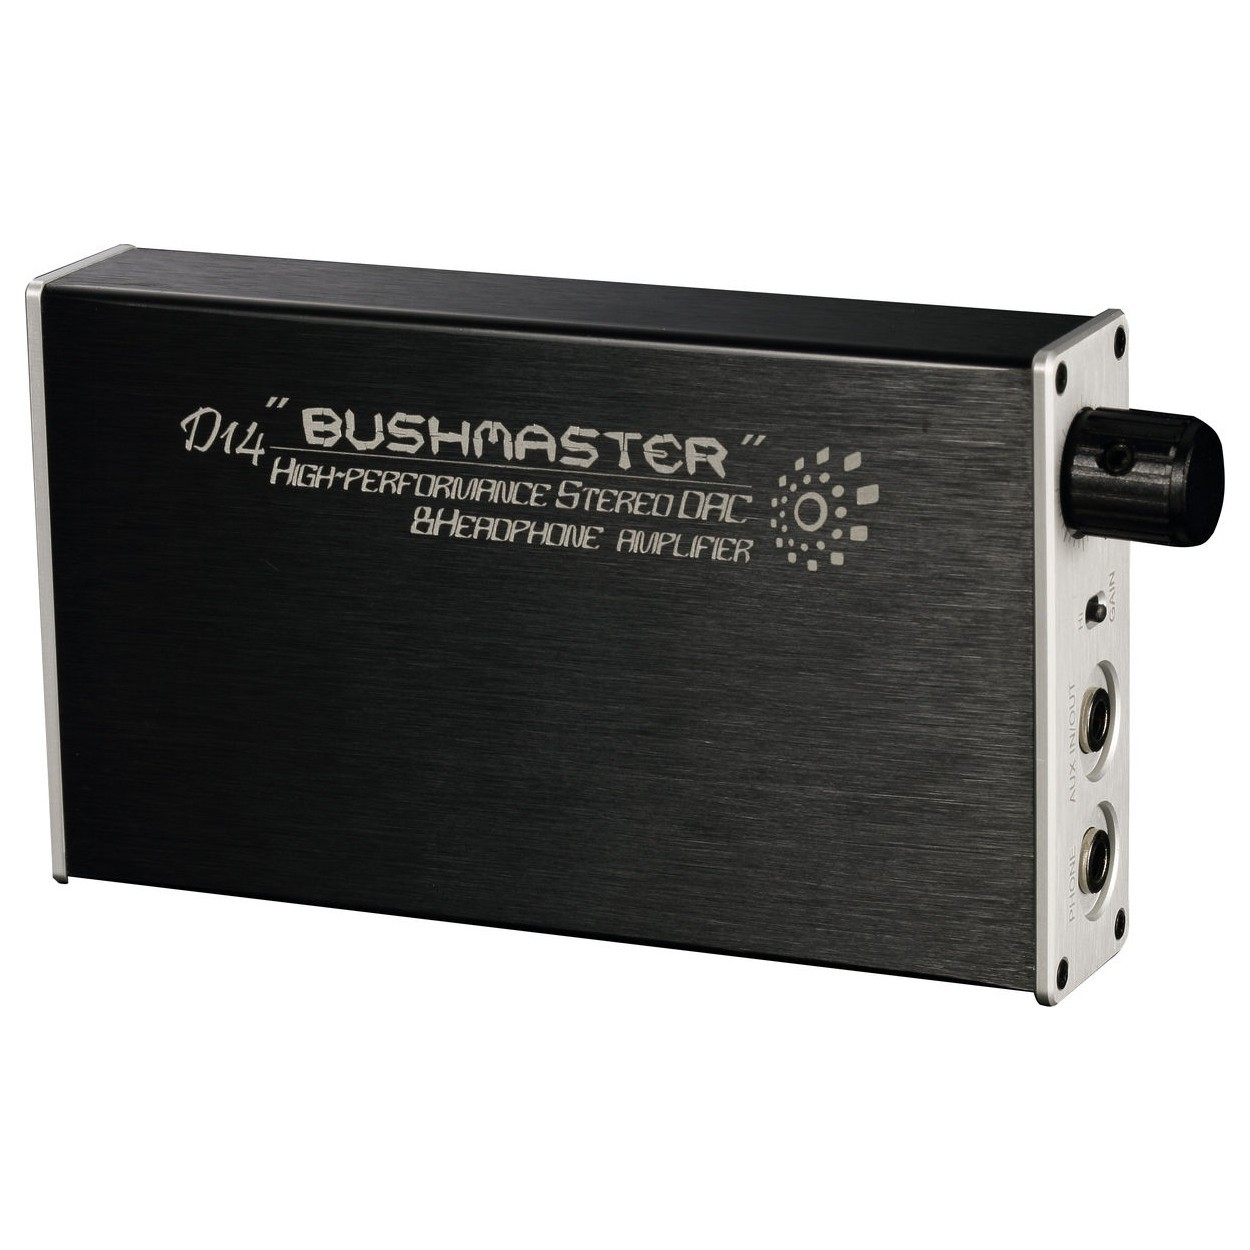 Ibasso D14 BUSHMASTER Headphone Amplifier / USB DAC ES9018K2M 32bit/384kHz DSD